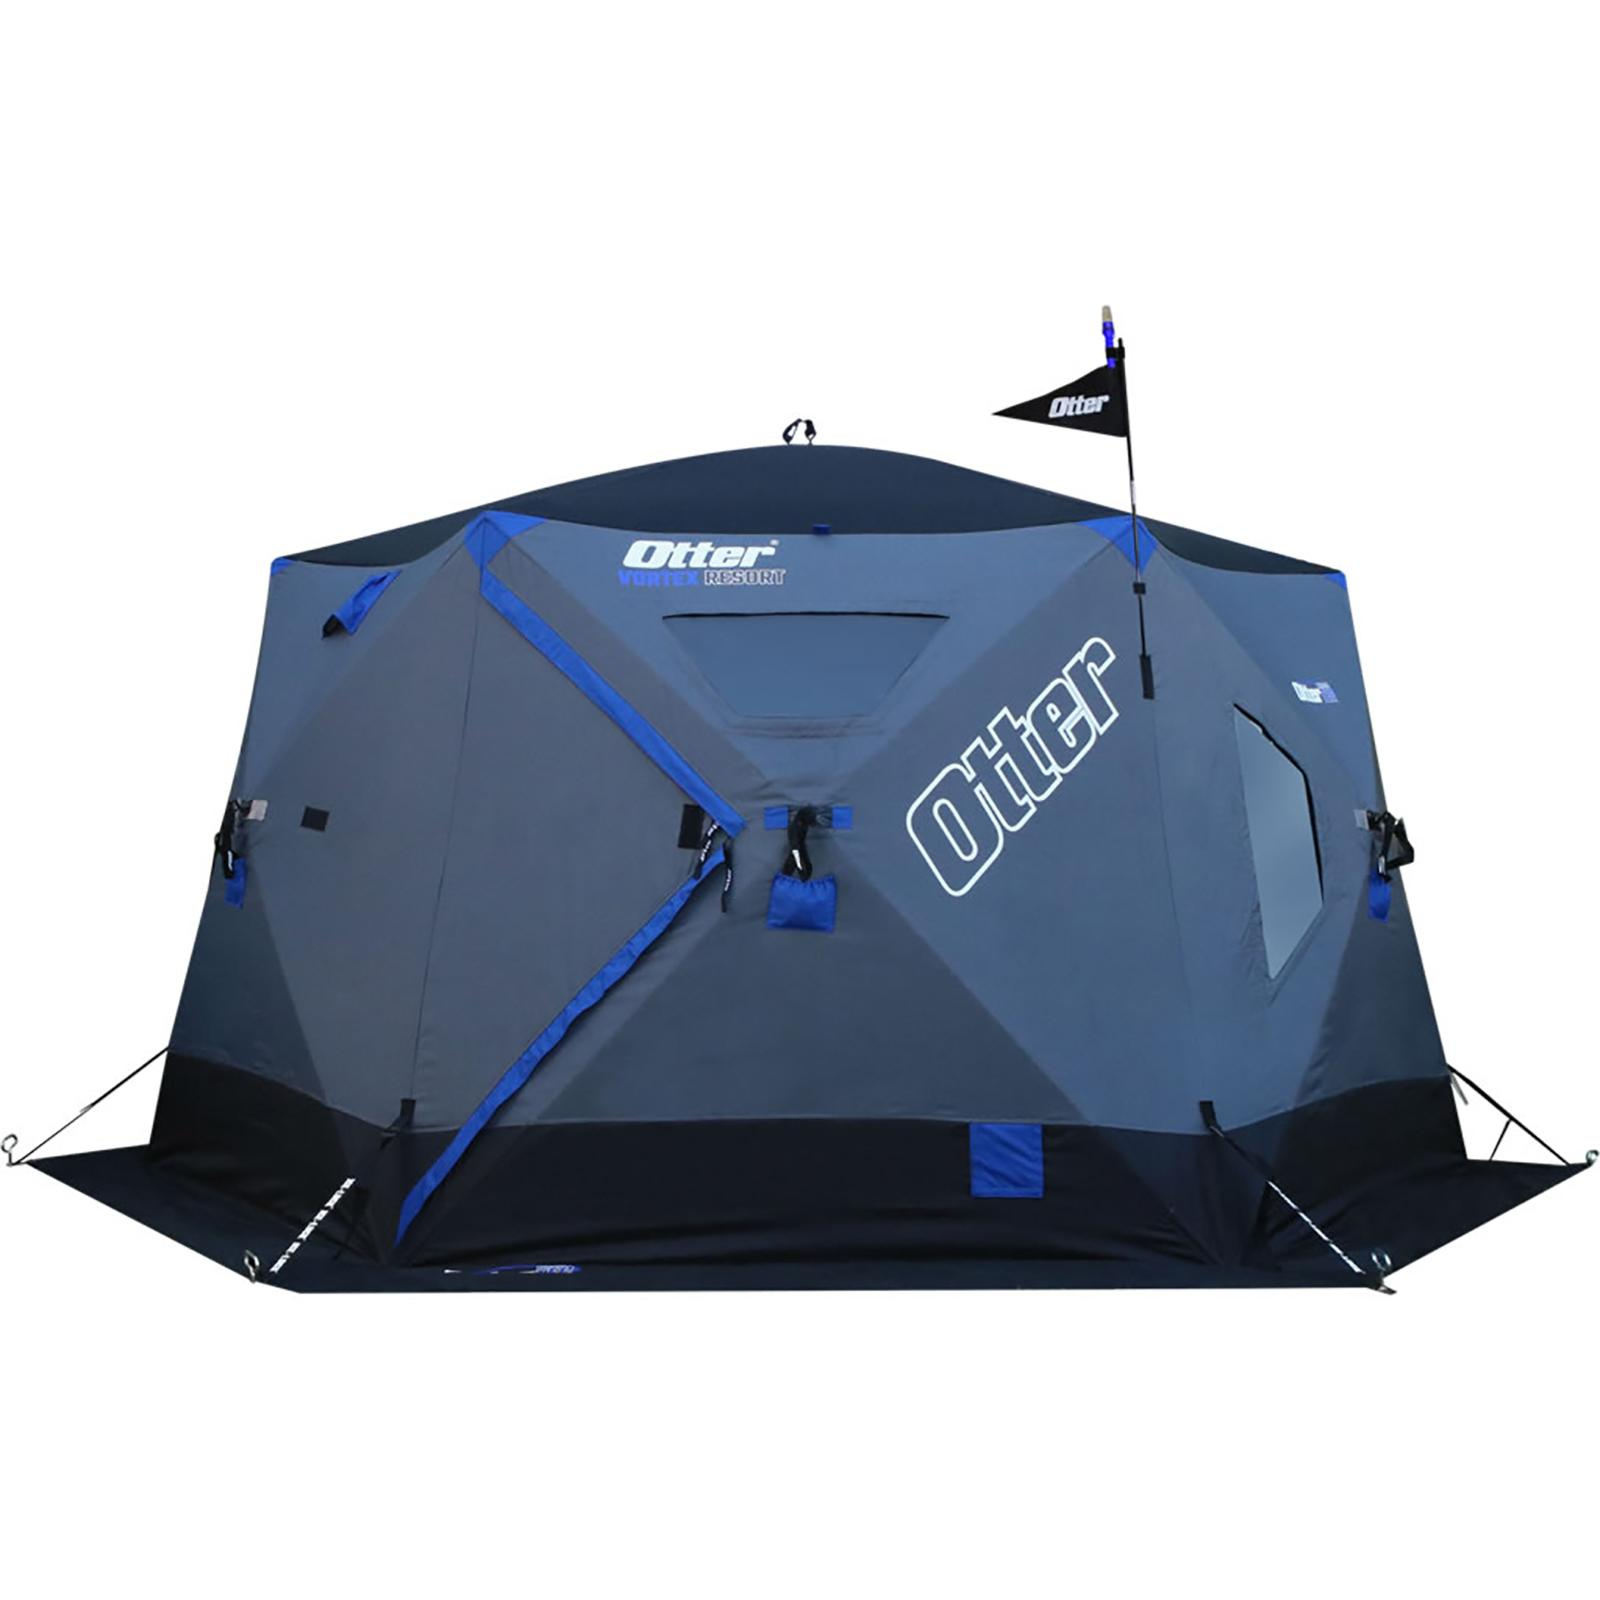 Otter Outdoors VORTEX Thermal Hub Ice Shelter Resort